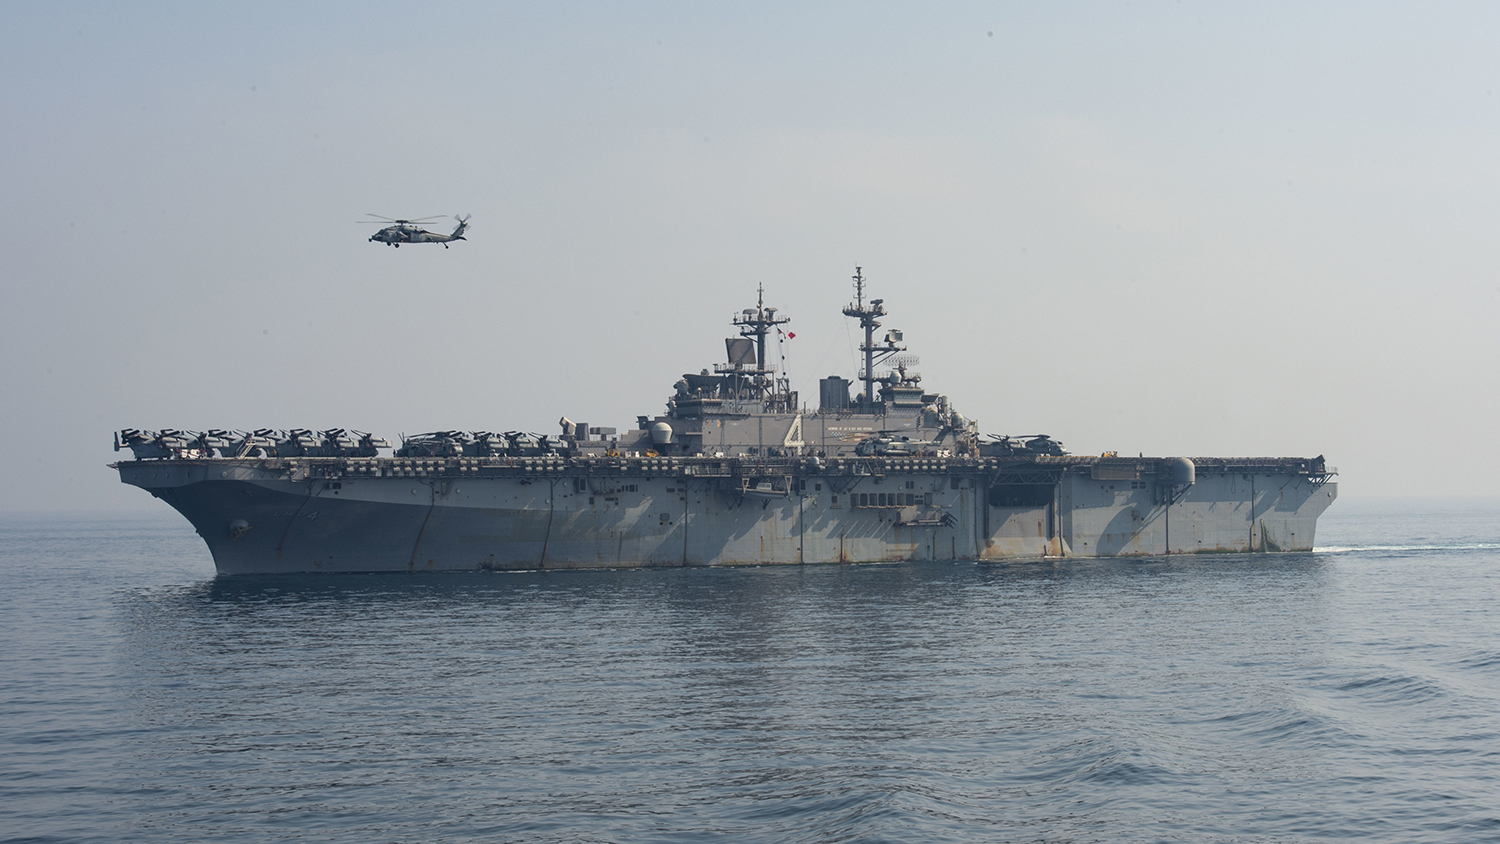 A SH-60 Sea Hawk flies over the amphibious assault ship USS Boxer (LHD 4) during a vertical replenishment-at-sea on July 19, 2019, in the Arabian Gulf. (Mass Communication Specialist 3rd Class Keypher Strombeck/Navy)